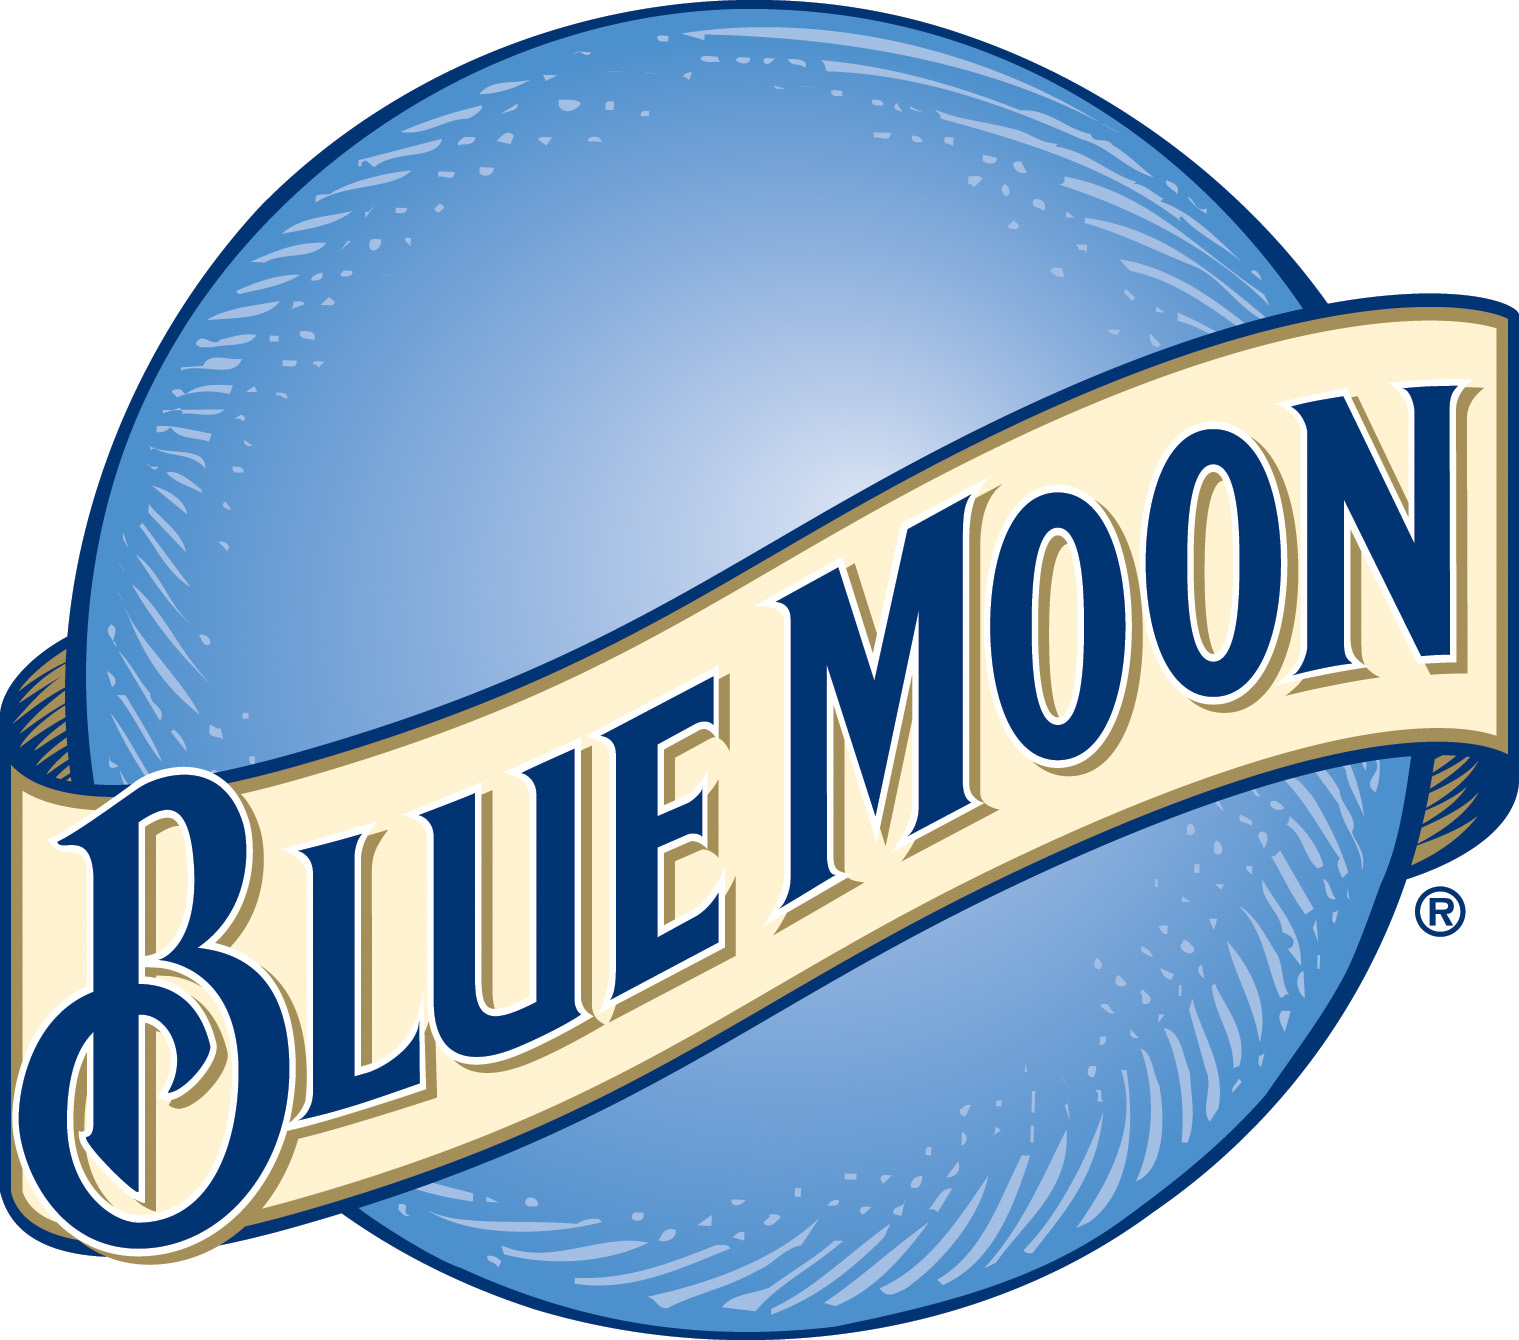 BlueMoon.jpg